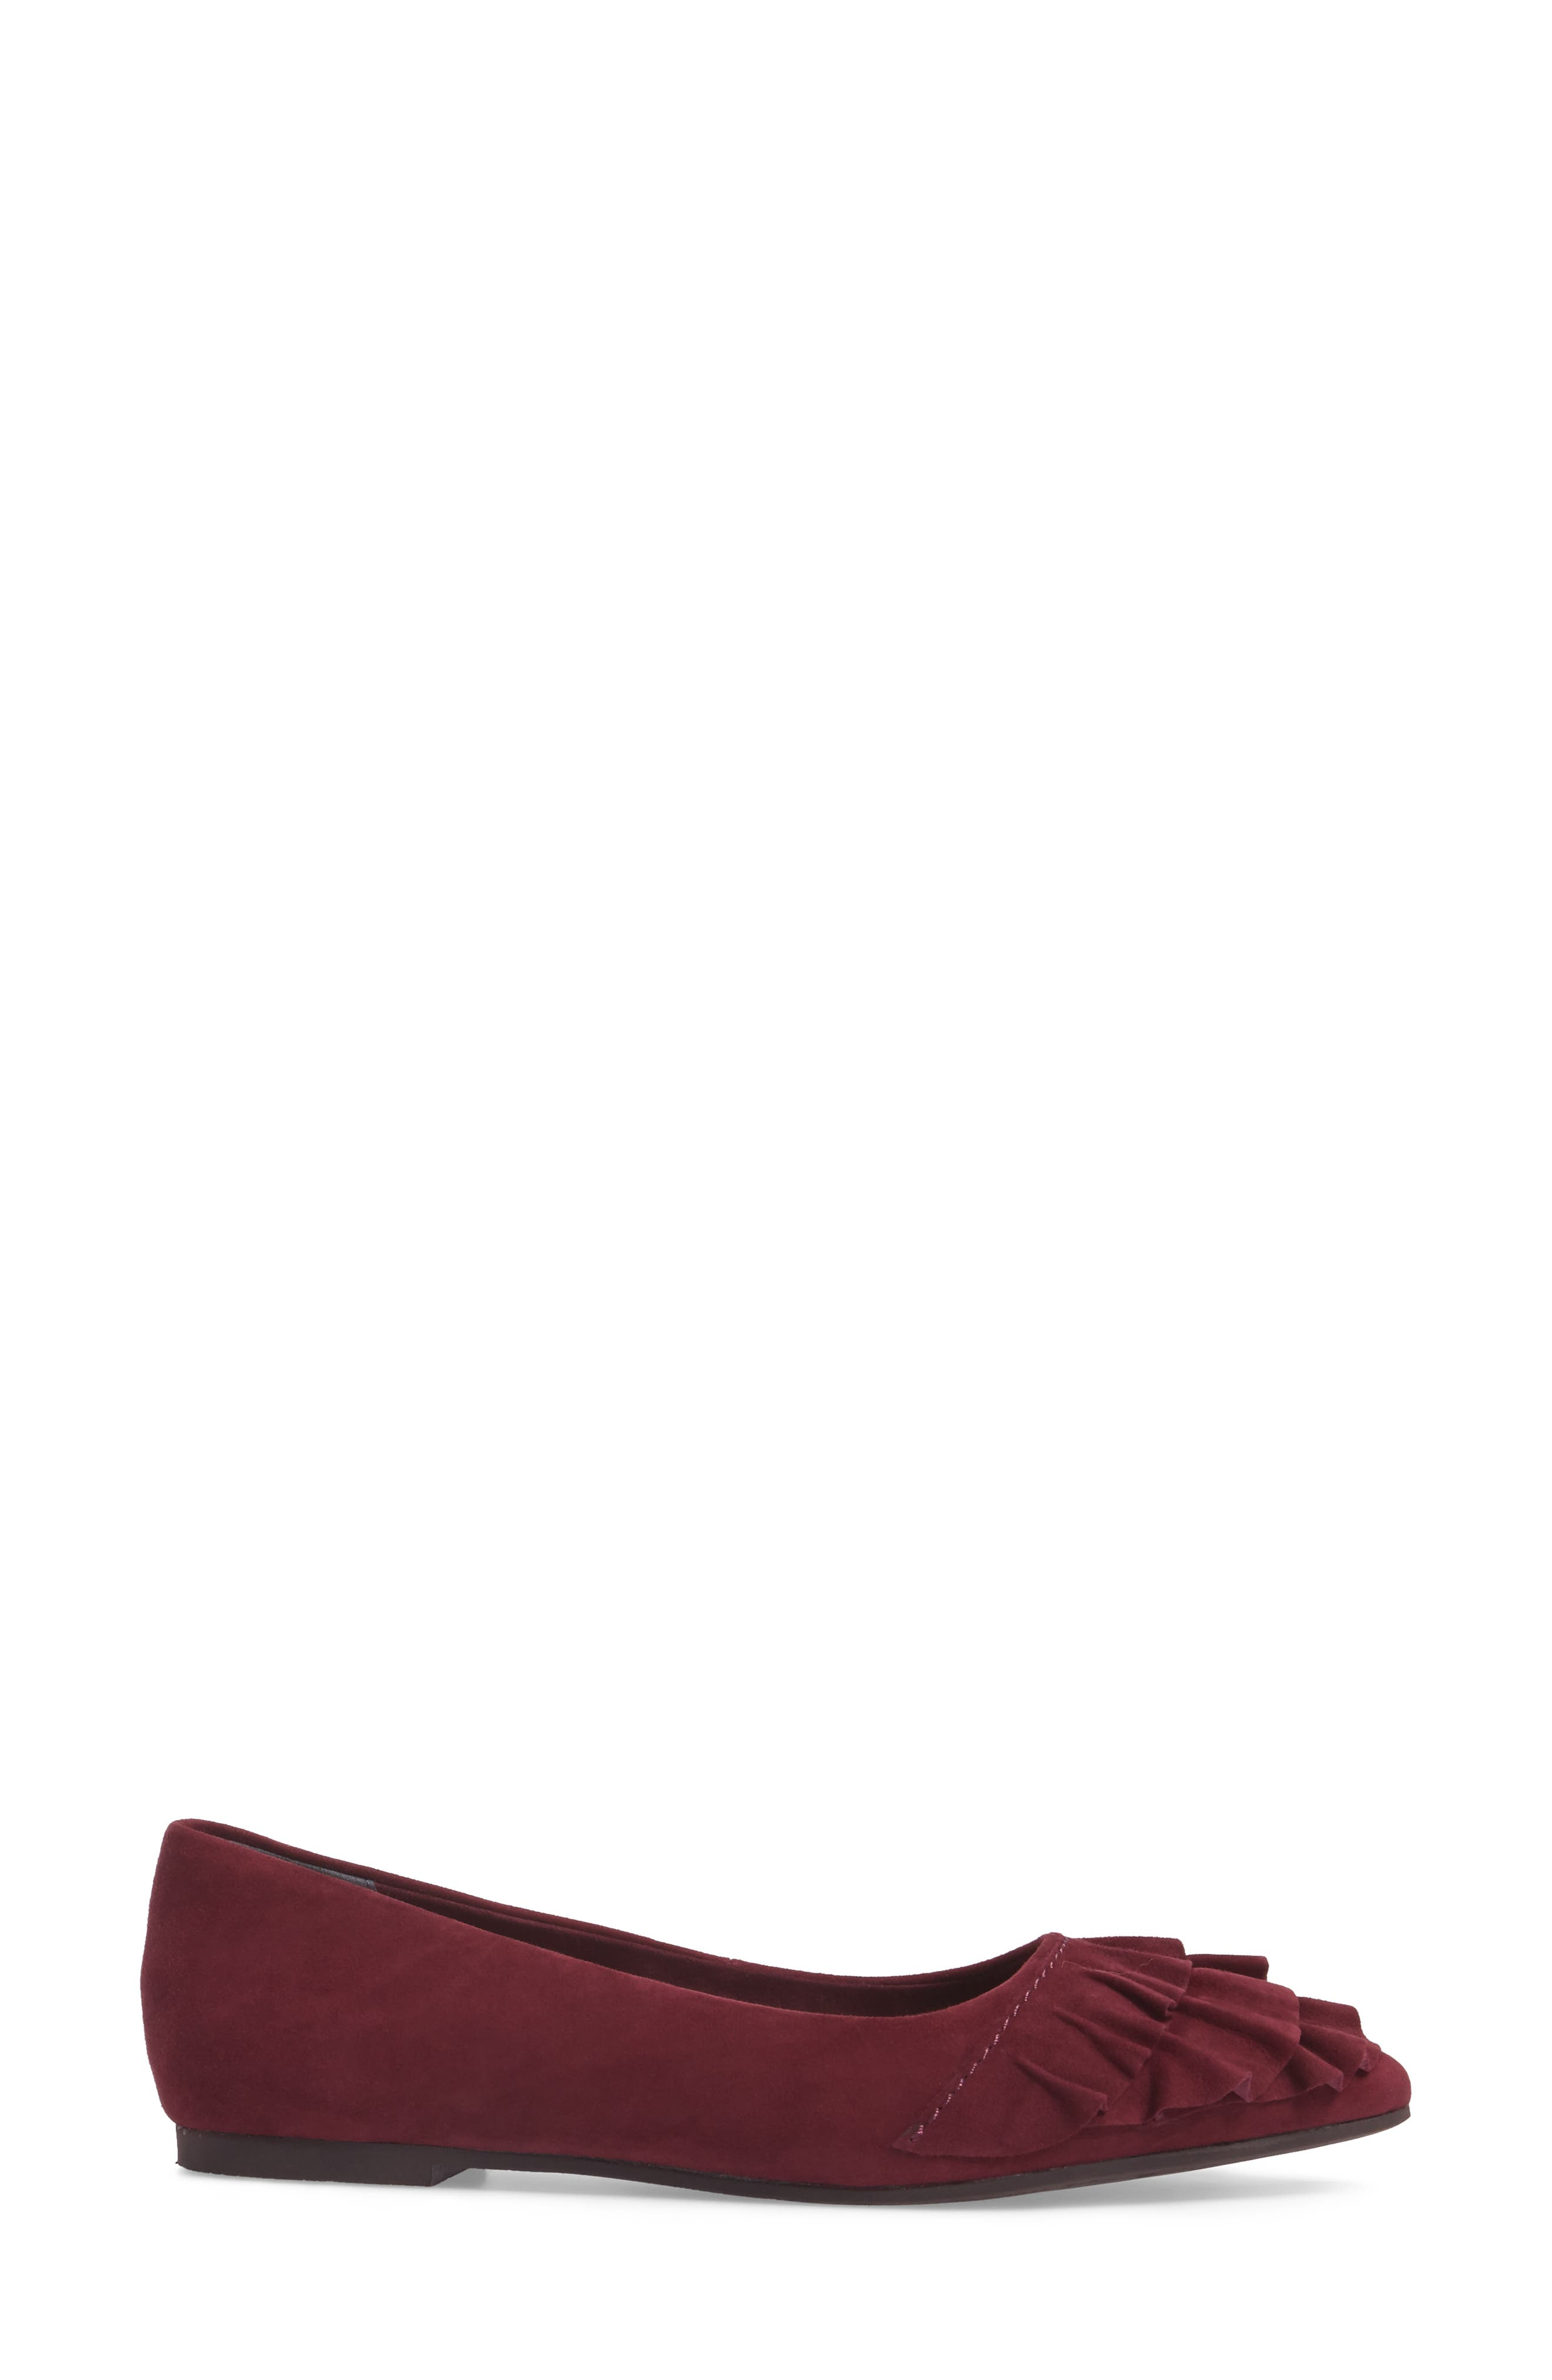 Downstage Pointy Toe Flat,                             Alternate thumbnail 4, color,                             Burgundy Suede